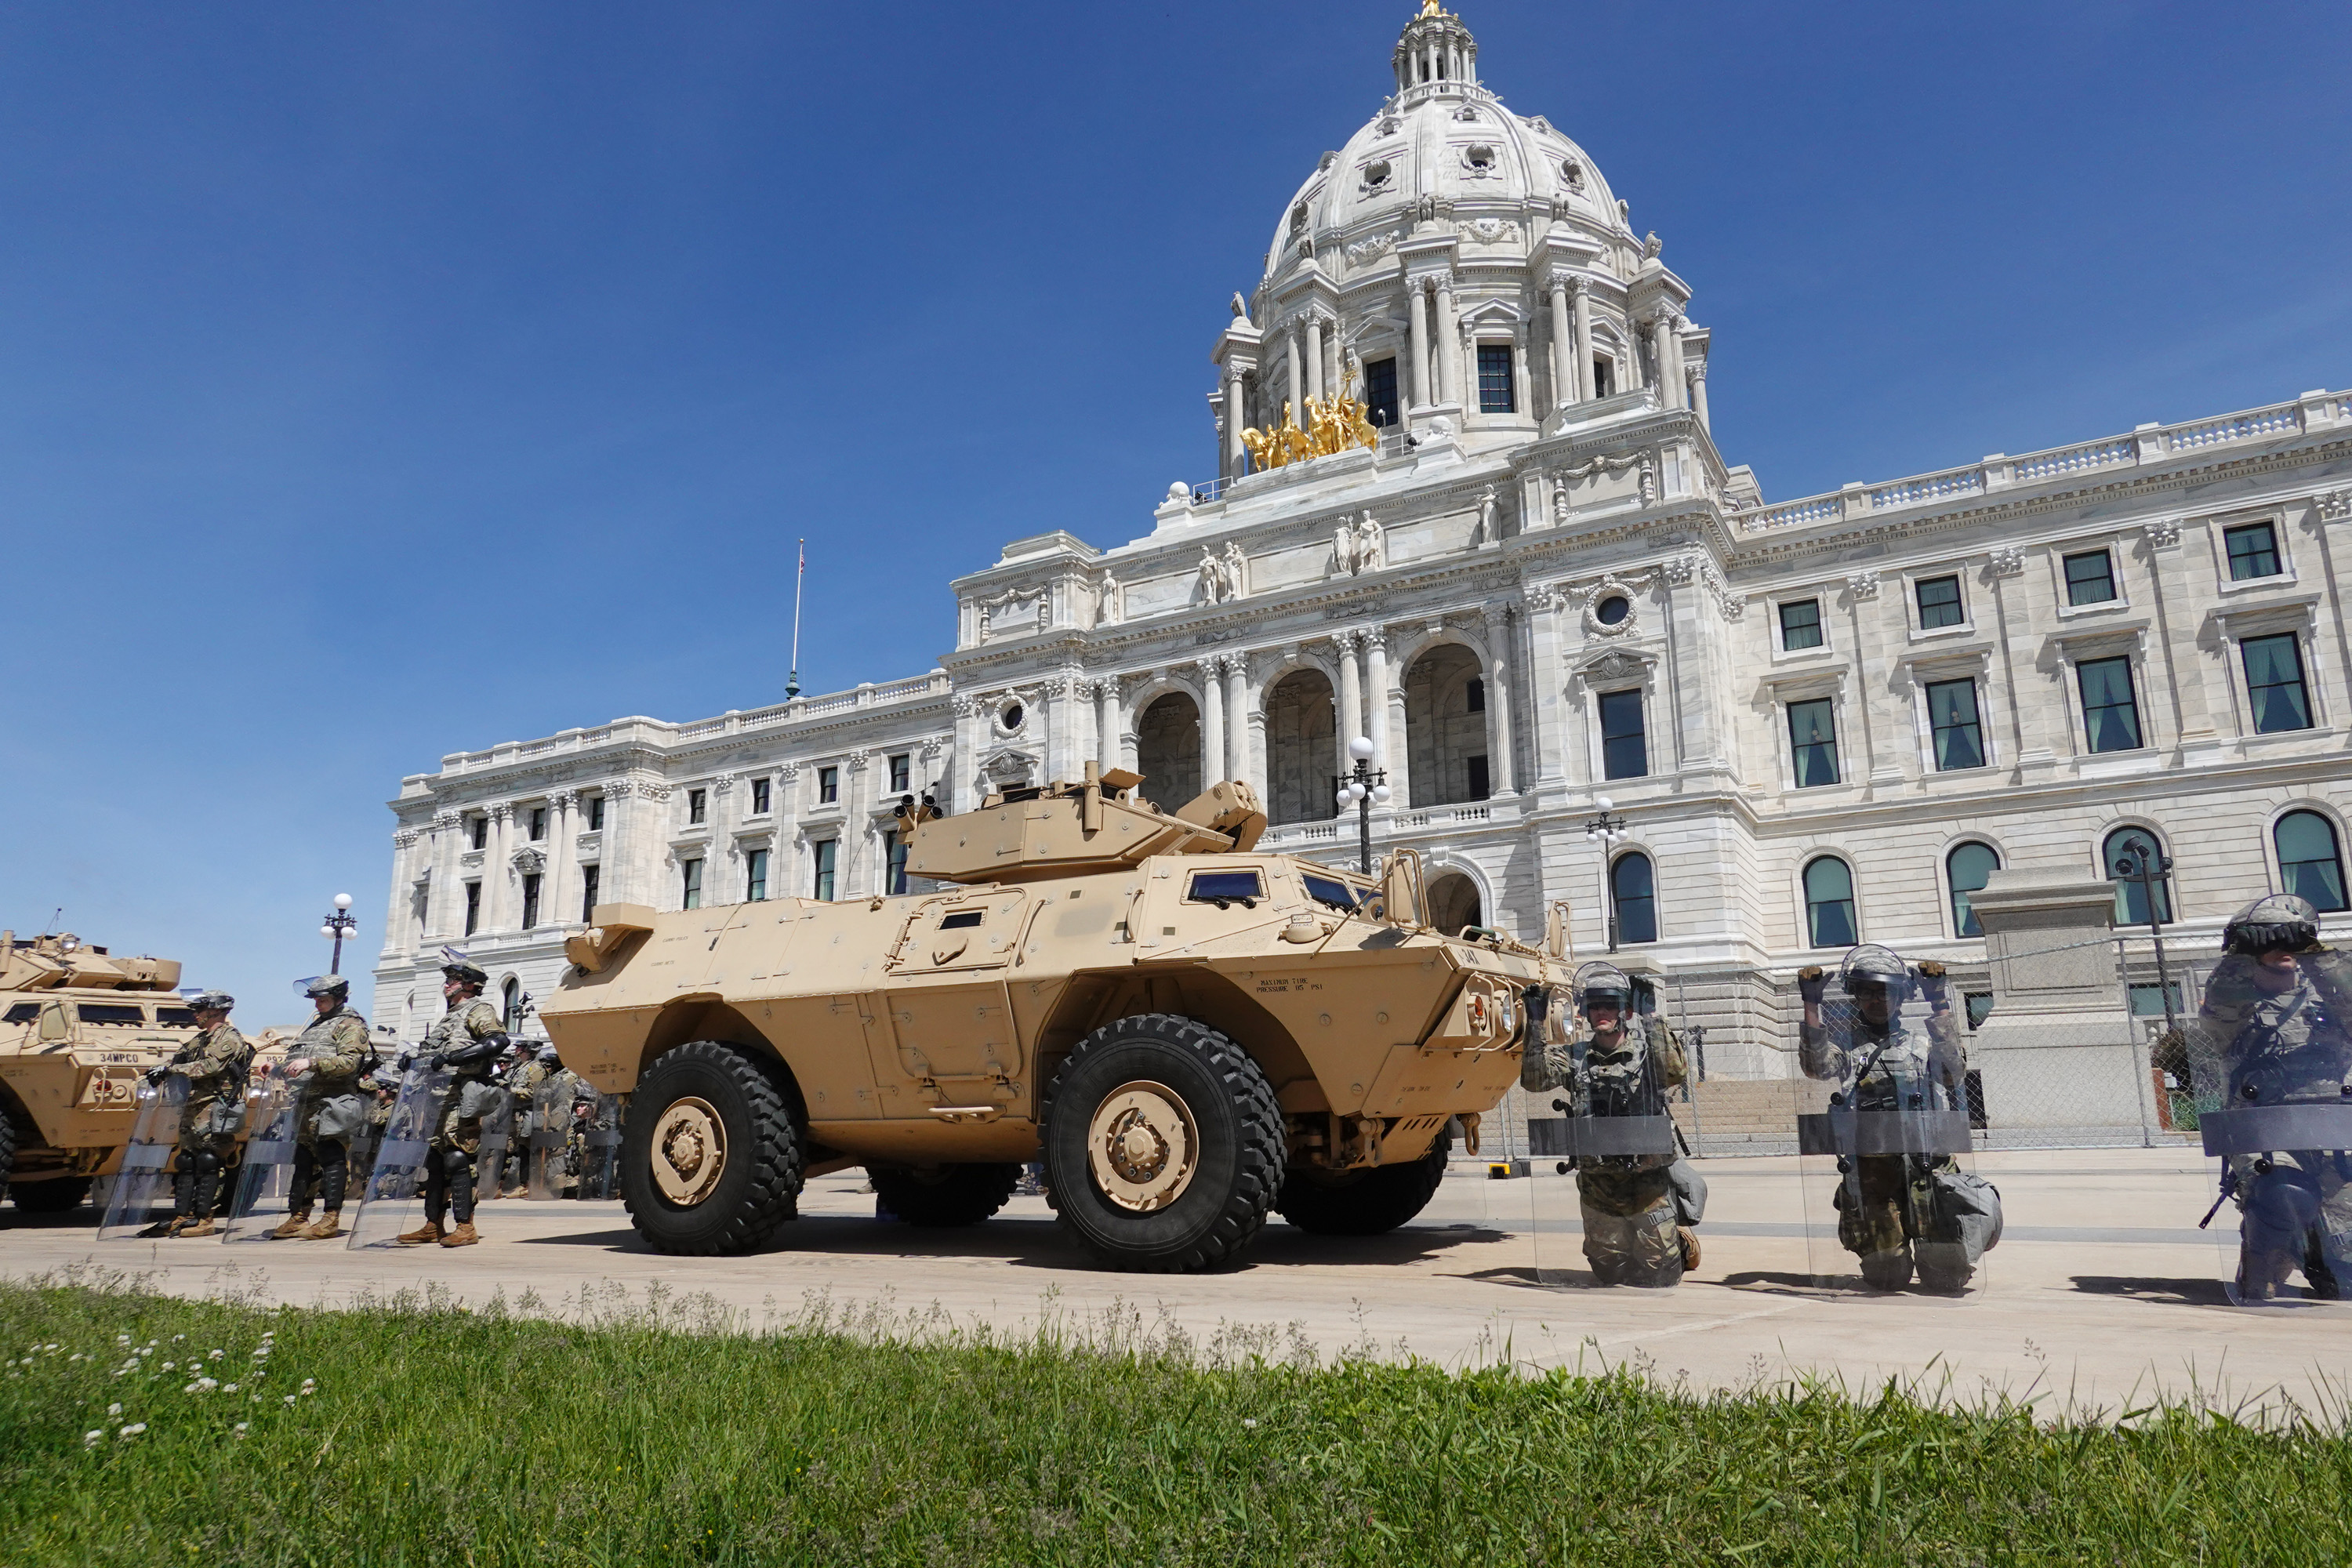 Members of the Minnesota National Guard surround the State Capitol in St. Paul, Minnesota, on May 31.